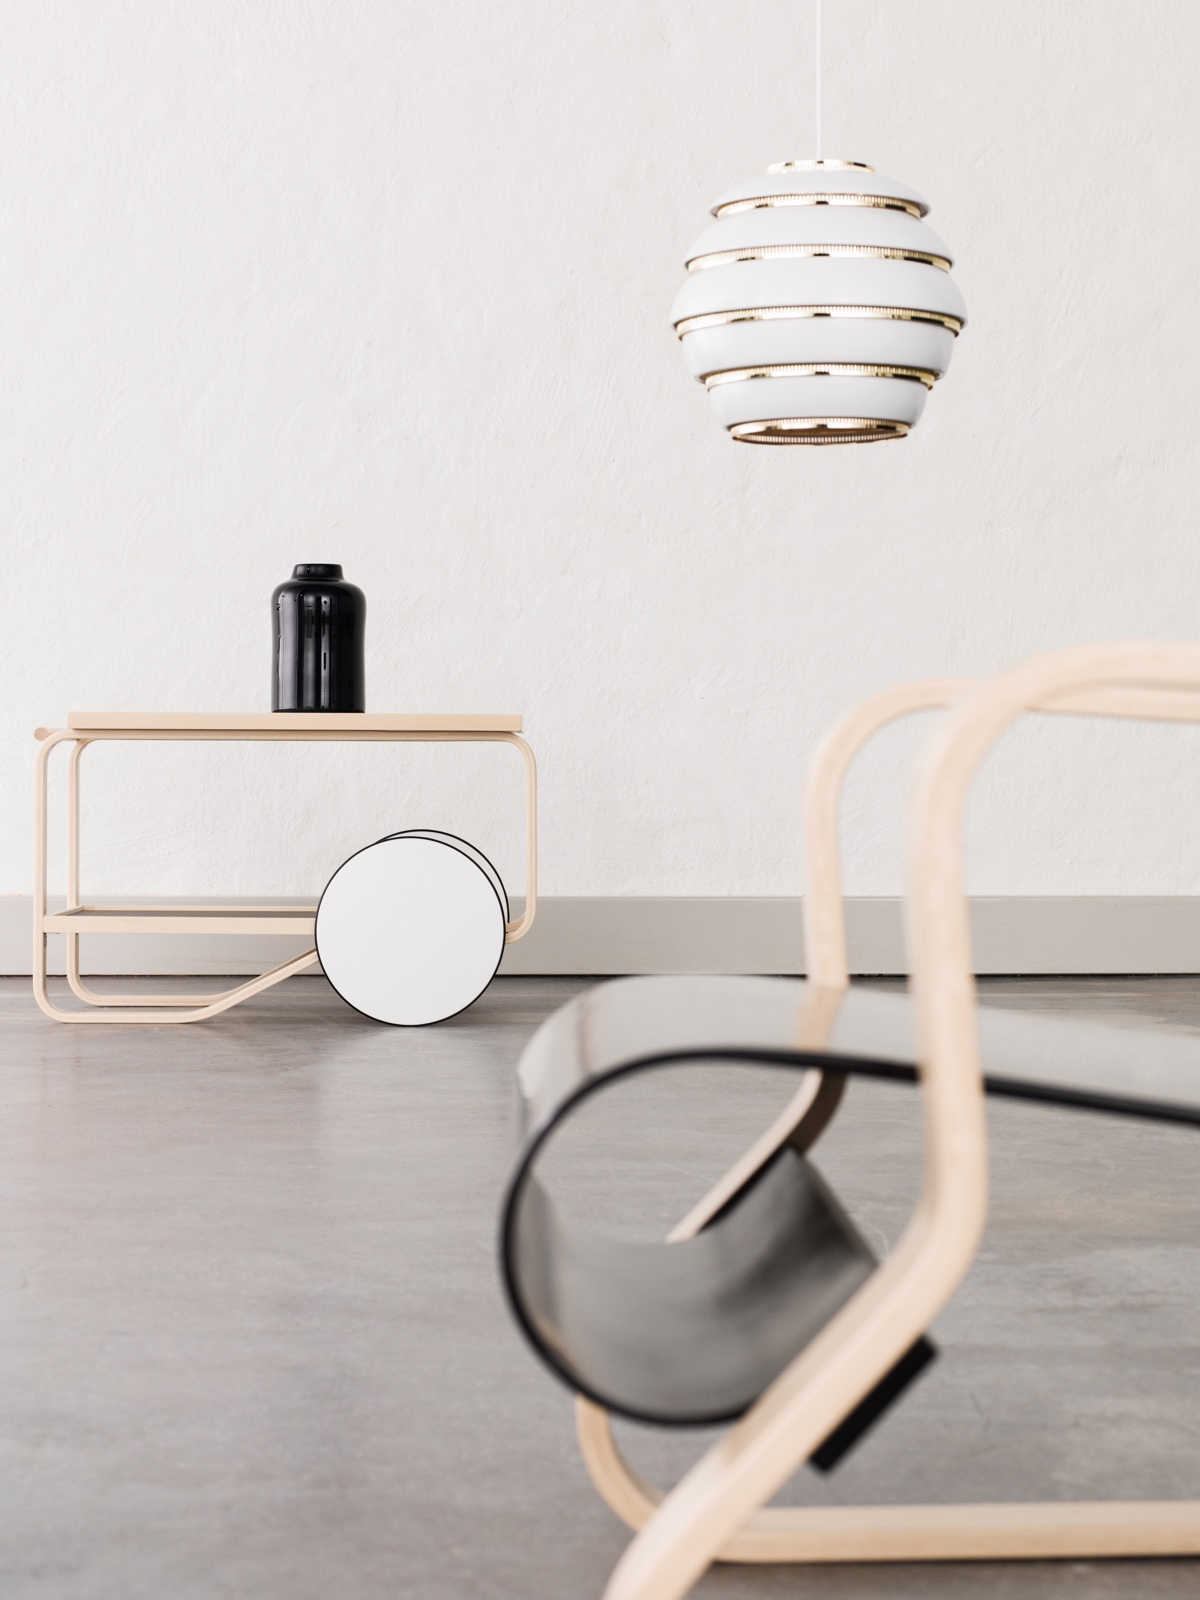 """Clockwise from left: Tea Trolley 901 (1936),Pendant Light A331 (1953) and Armchair 41 """"Paimio"""". ThePaimiolounge chair was designed in 1932 for thethe Paimio Sanatorium in Finland. Photo byOsma Harvilahti."""